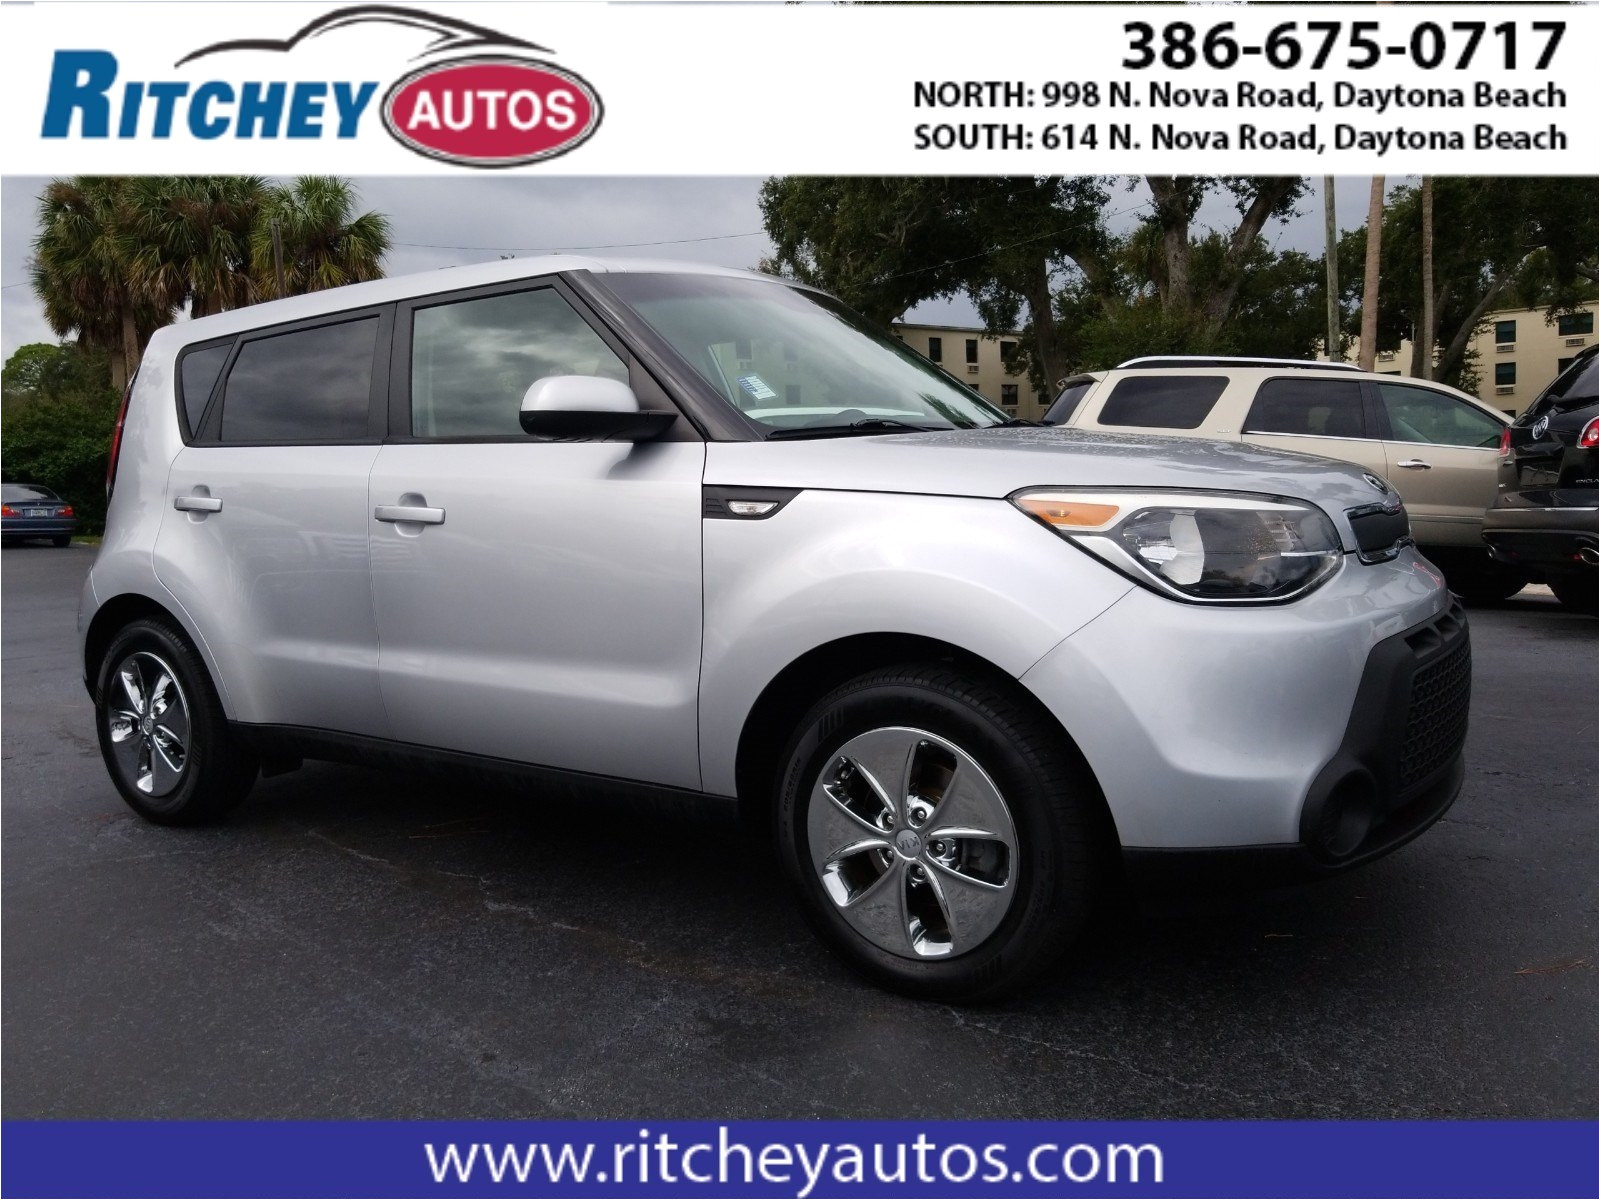 used vehicles between 1 001 and 10 000 for sale in daytona beach fl ritchey autos